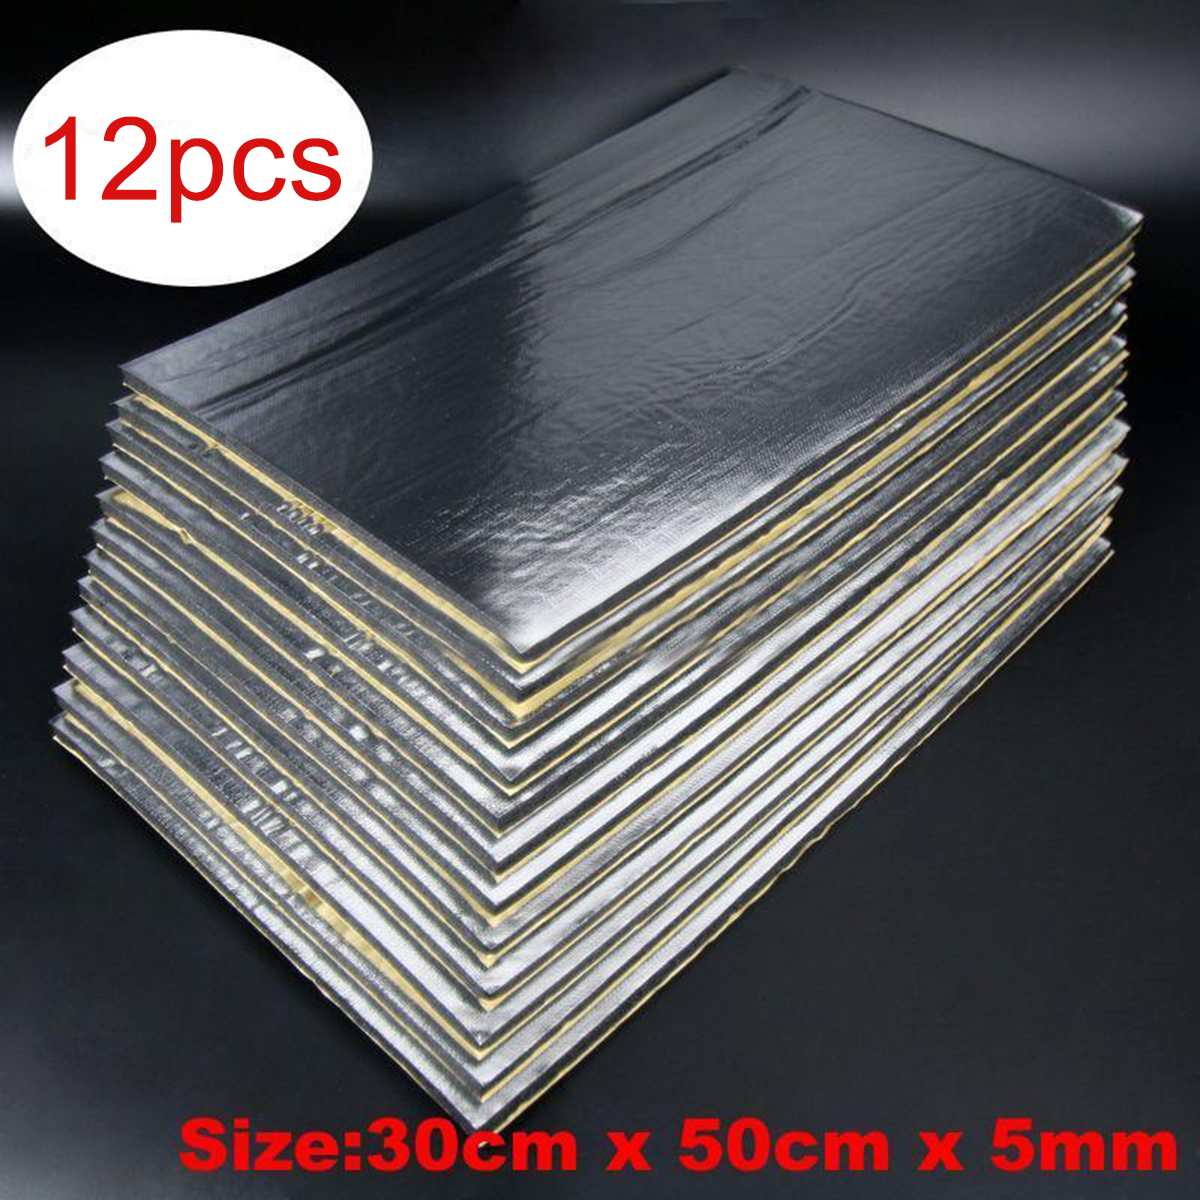 12Pcs 30cm X 50cm  5mm Car Sound Proof Deadening Upgarded Car Truck Anti-noise Sound Insulation Cotton Heat Closed Cell Foam